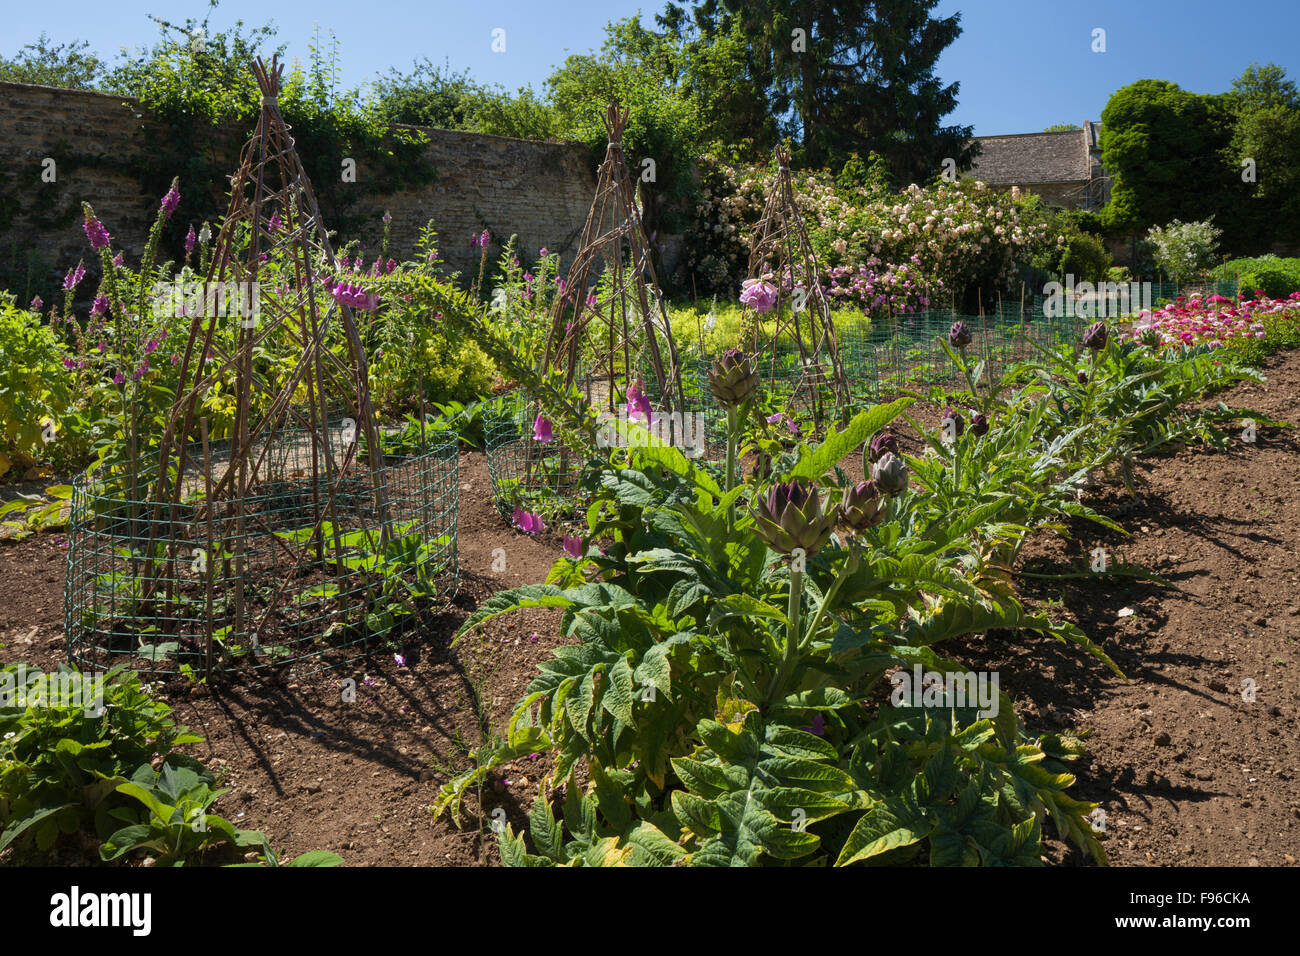 Foxgloves and sweet williams, growing beside artichokes and willow cane teepee's within the vegetable garden - Stock Image